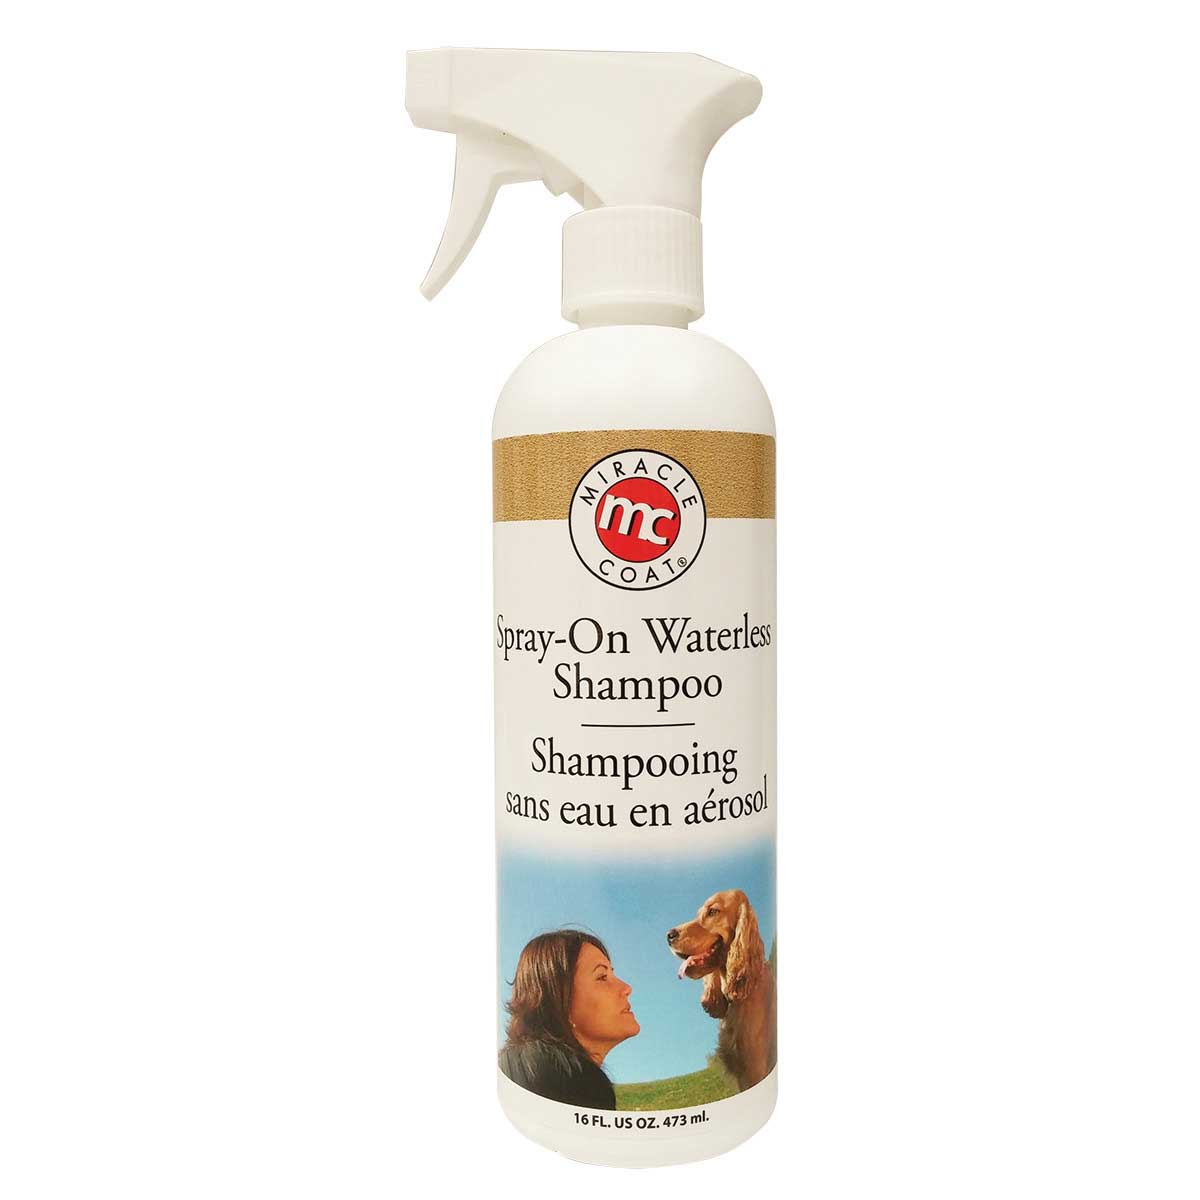 Miracle Care Spray-On Waterless Shampoo for Dogs - 16 oz